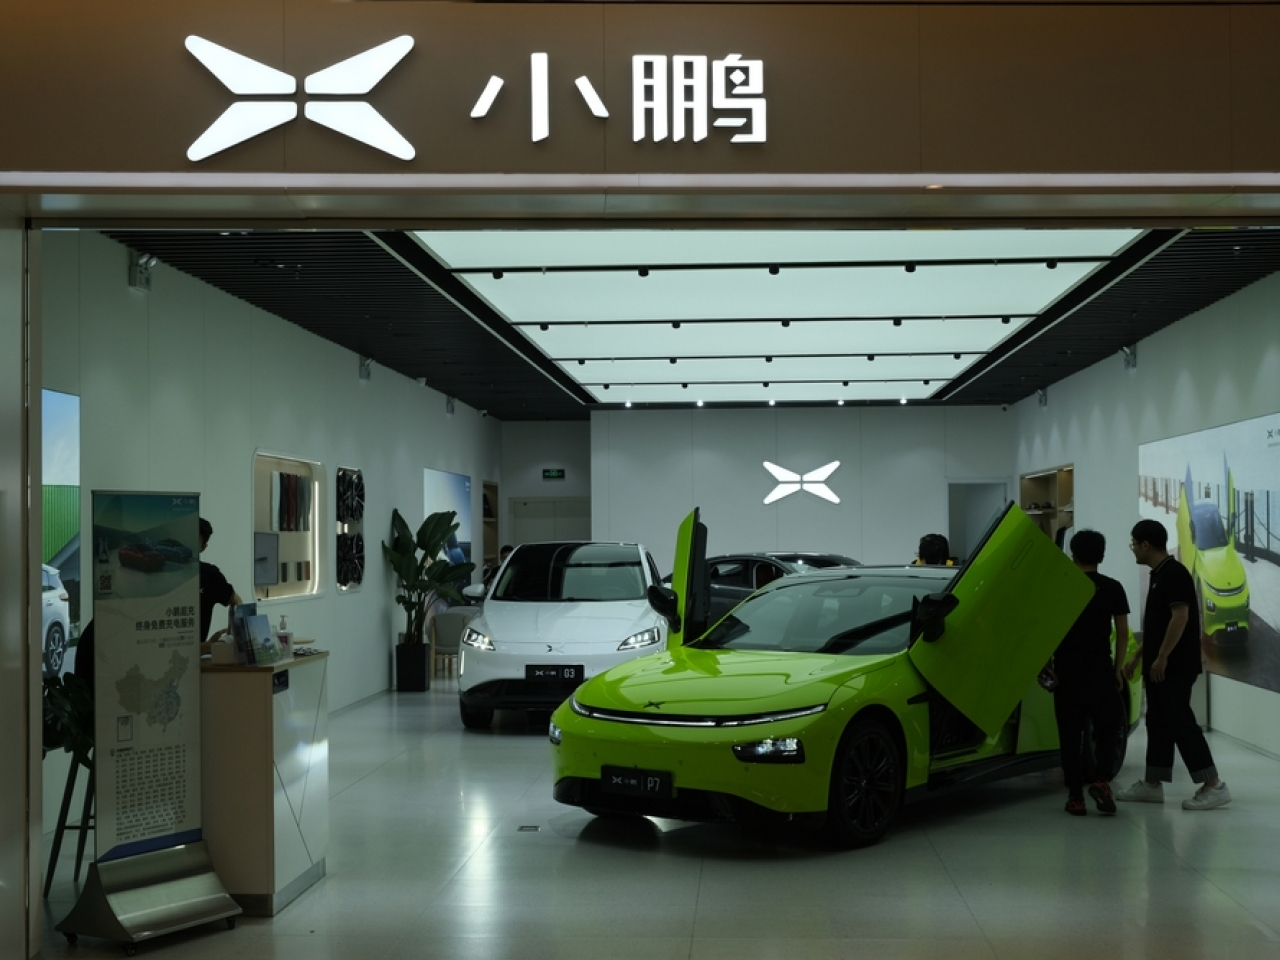 Some of Xpeng's terrestrial cars on display at a showroom in Shanghai. File image: Shutterstock